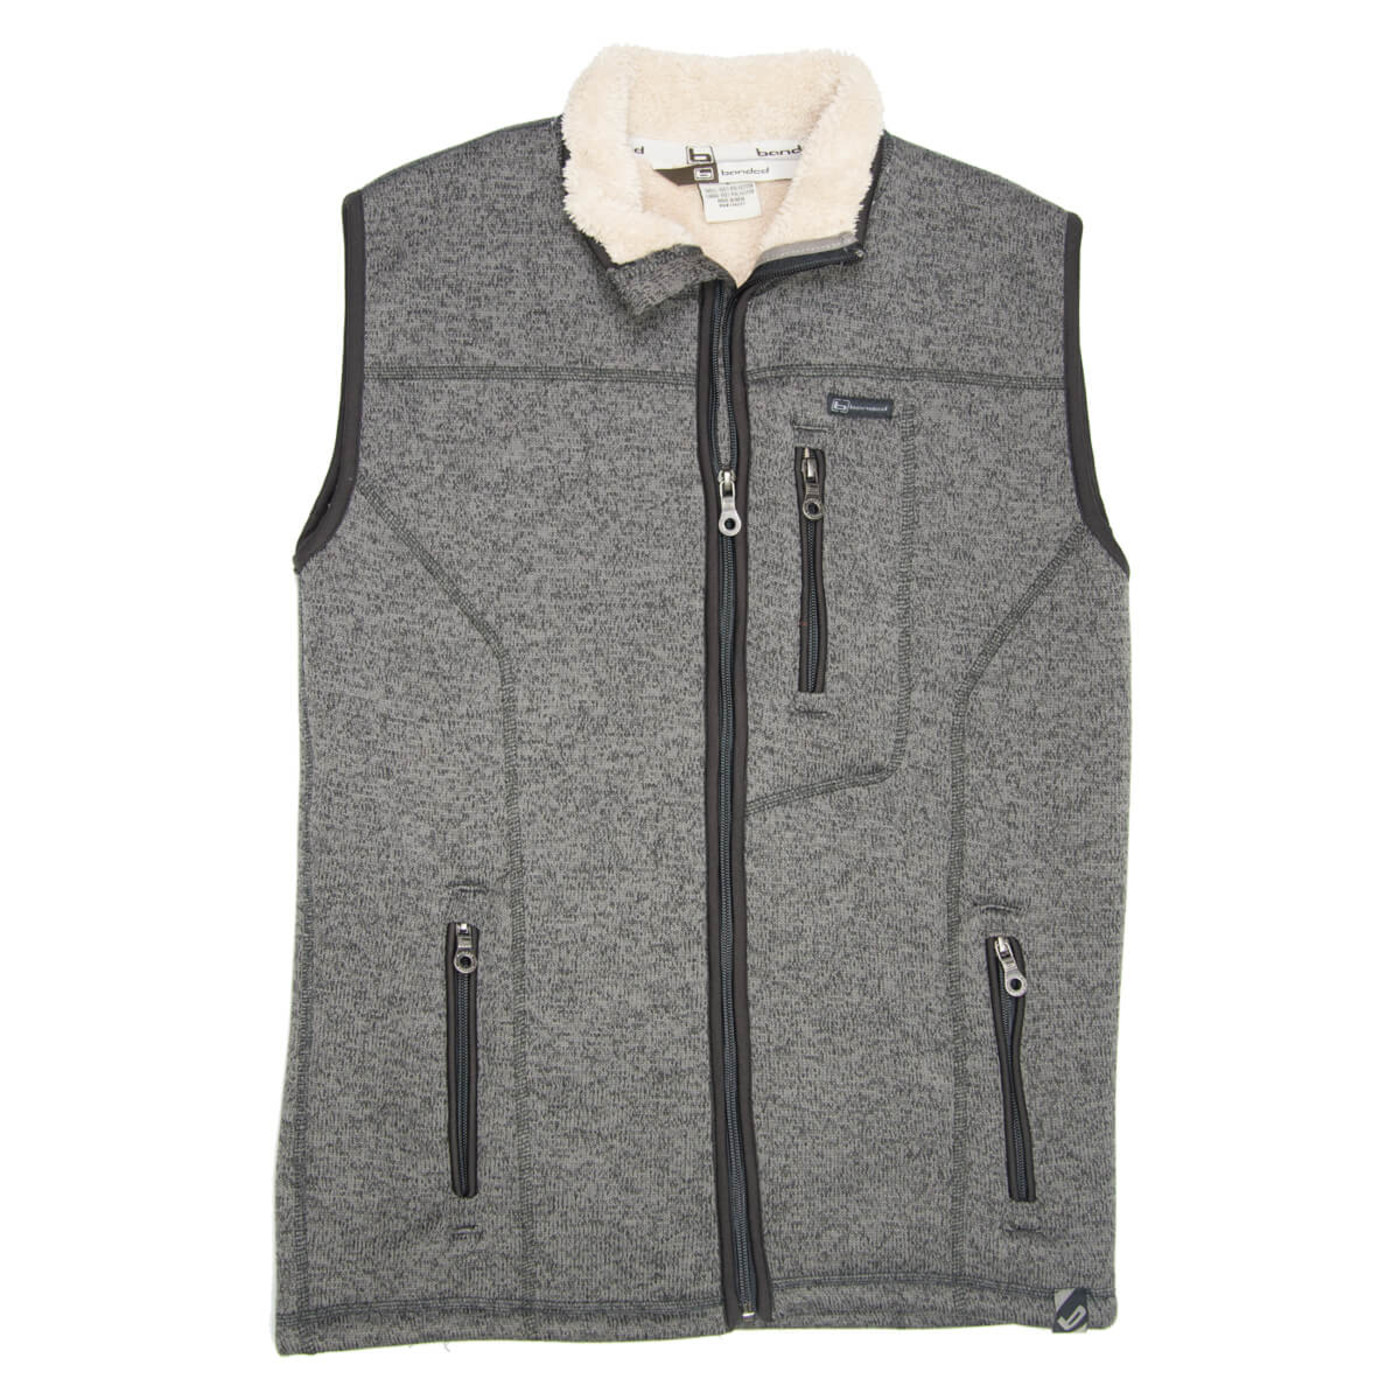 Banded Polar Fleece Vest in Grey Color